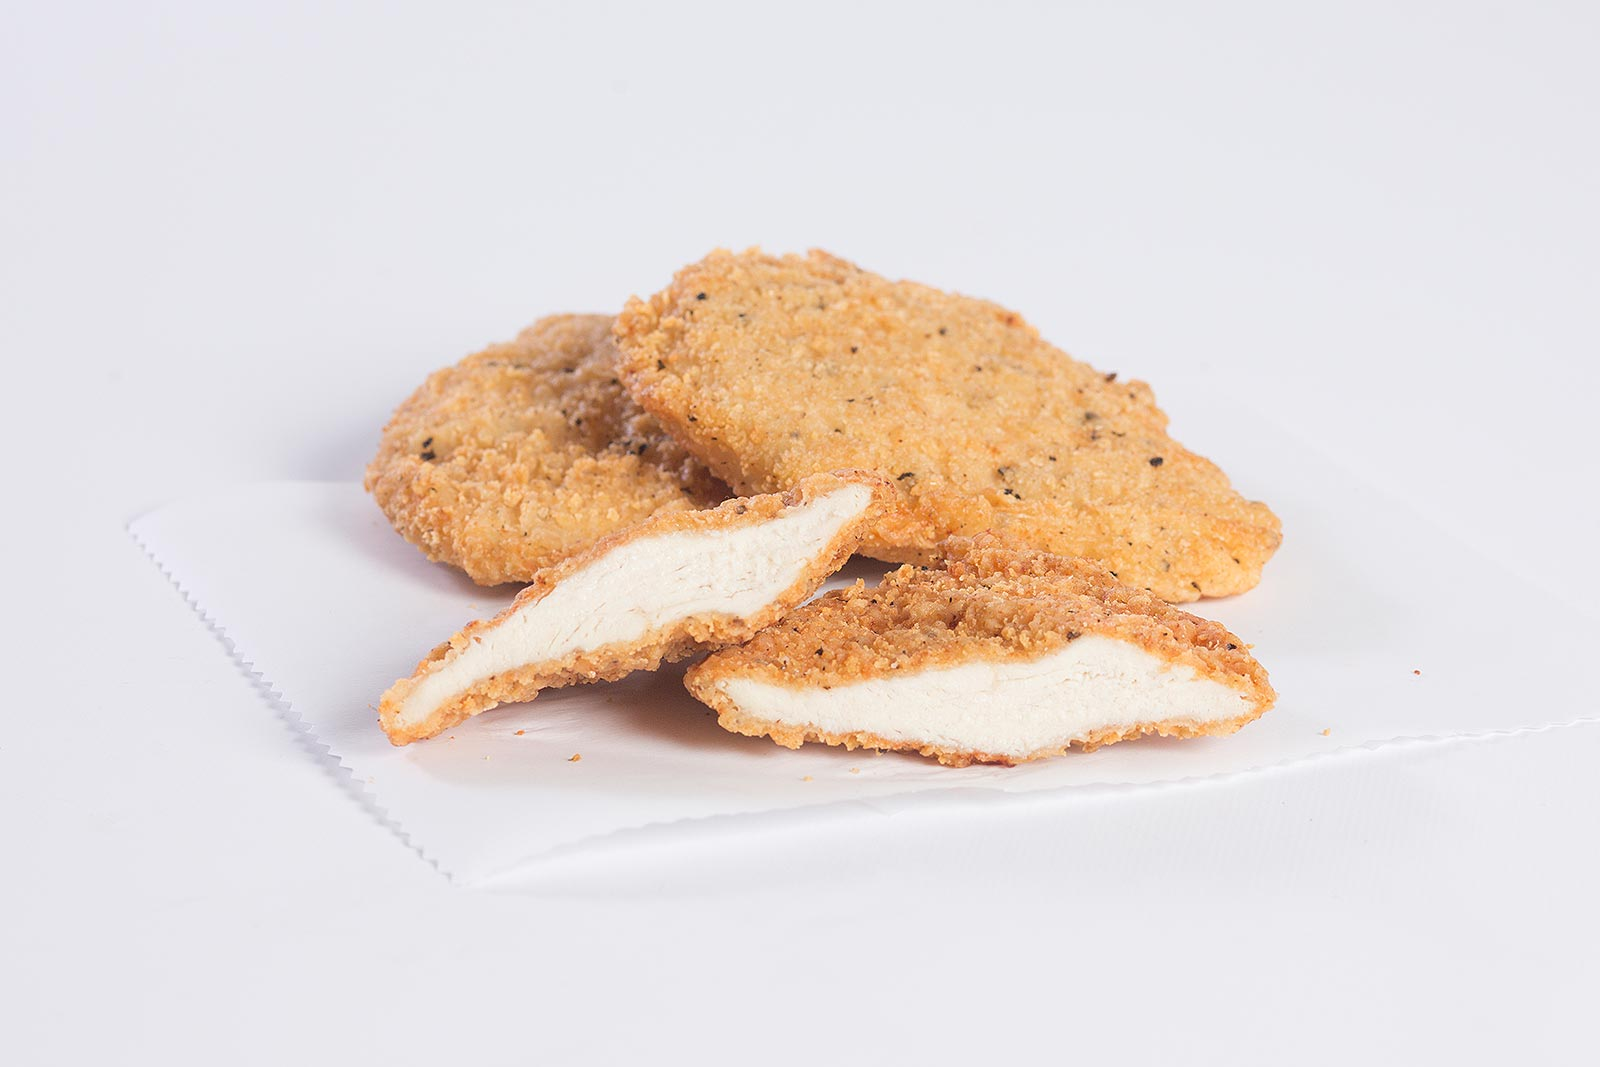 Southern Breaded Breast Fillets image